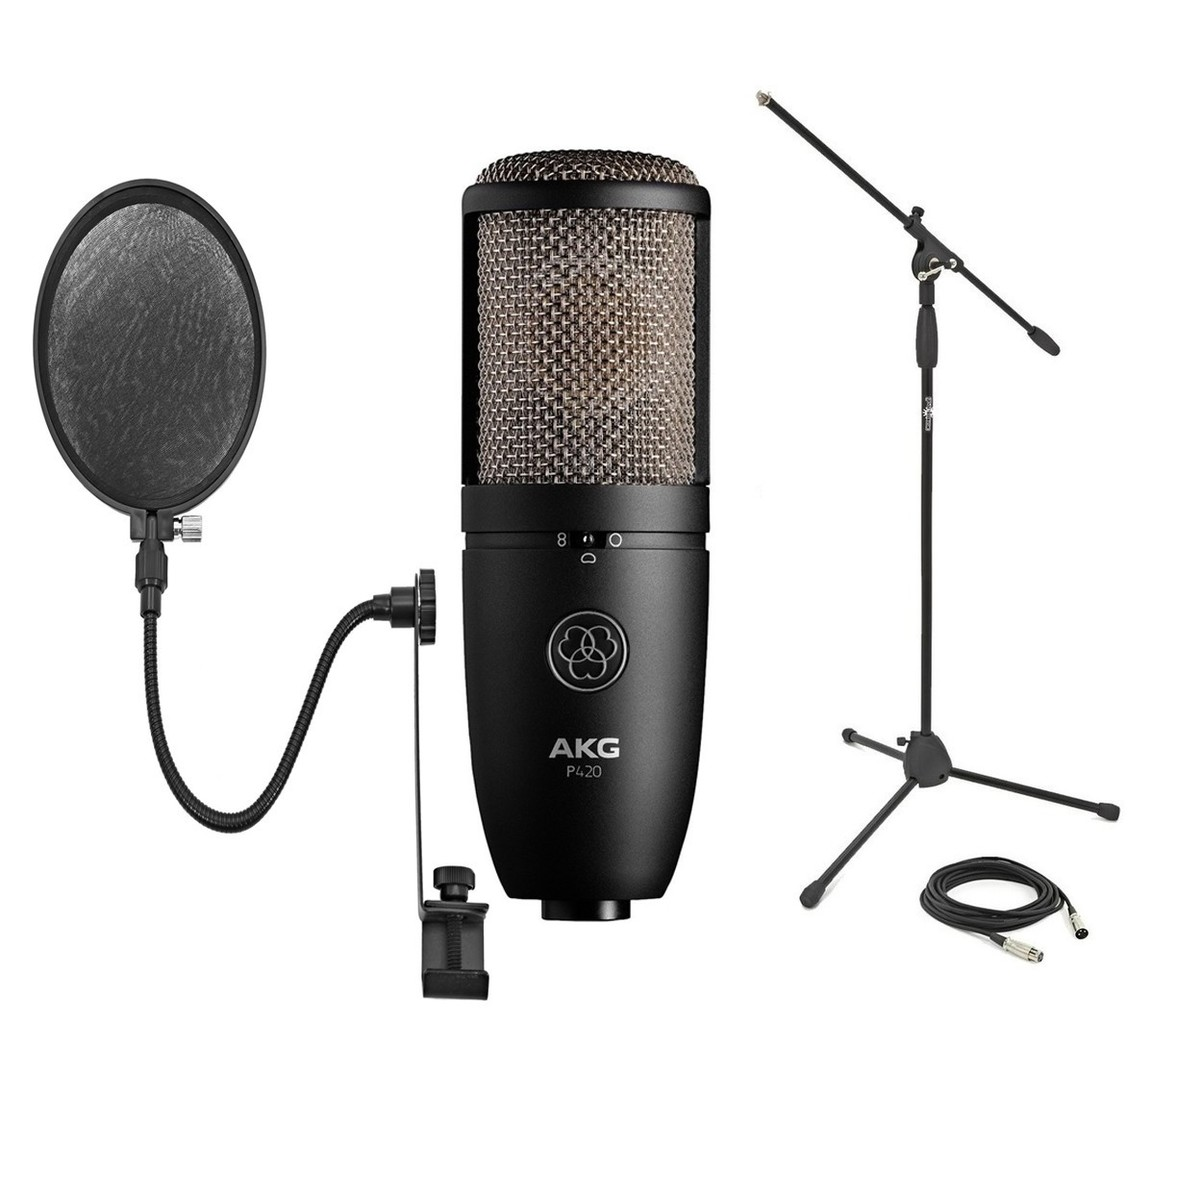 AKG Perception P420 Mikrofon med Stort Membran | Gear4music